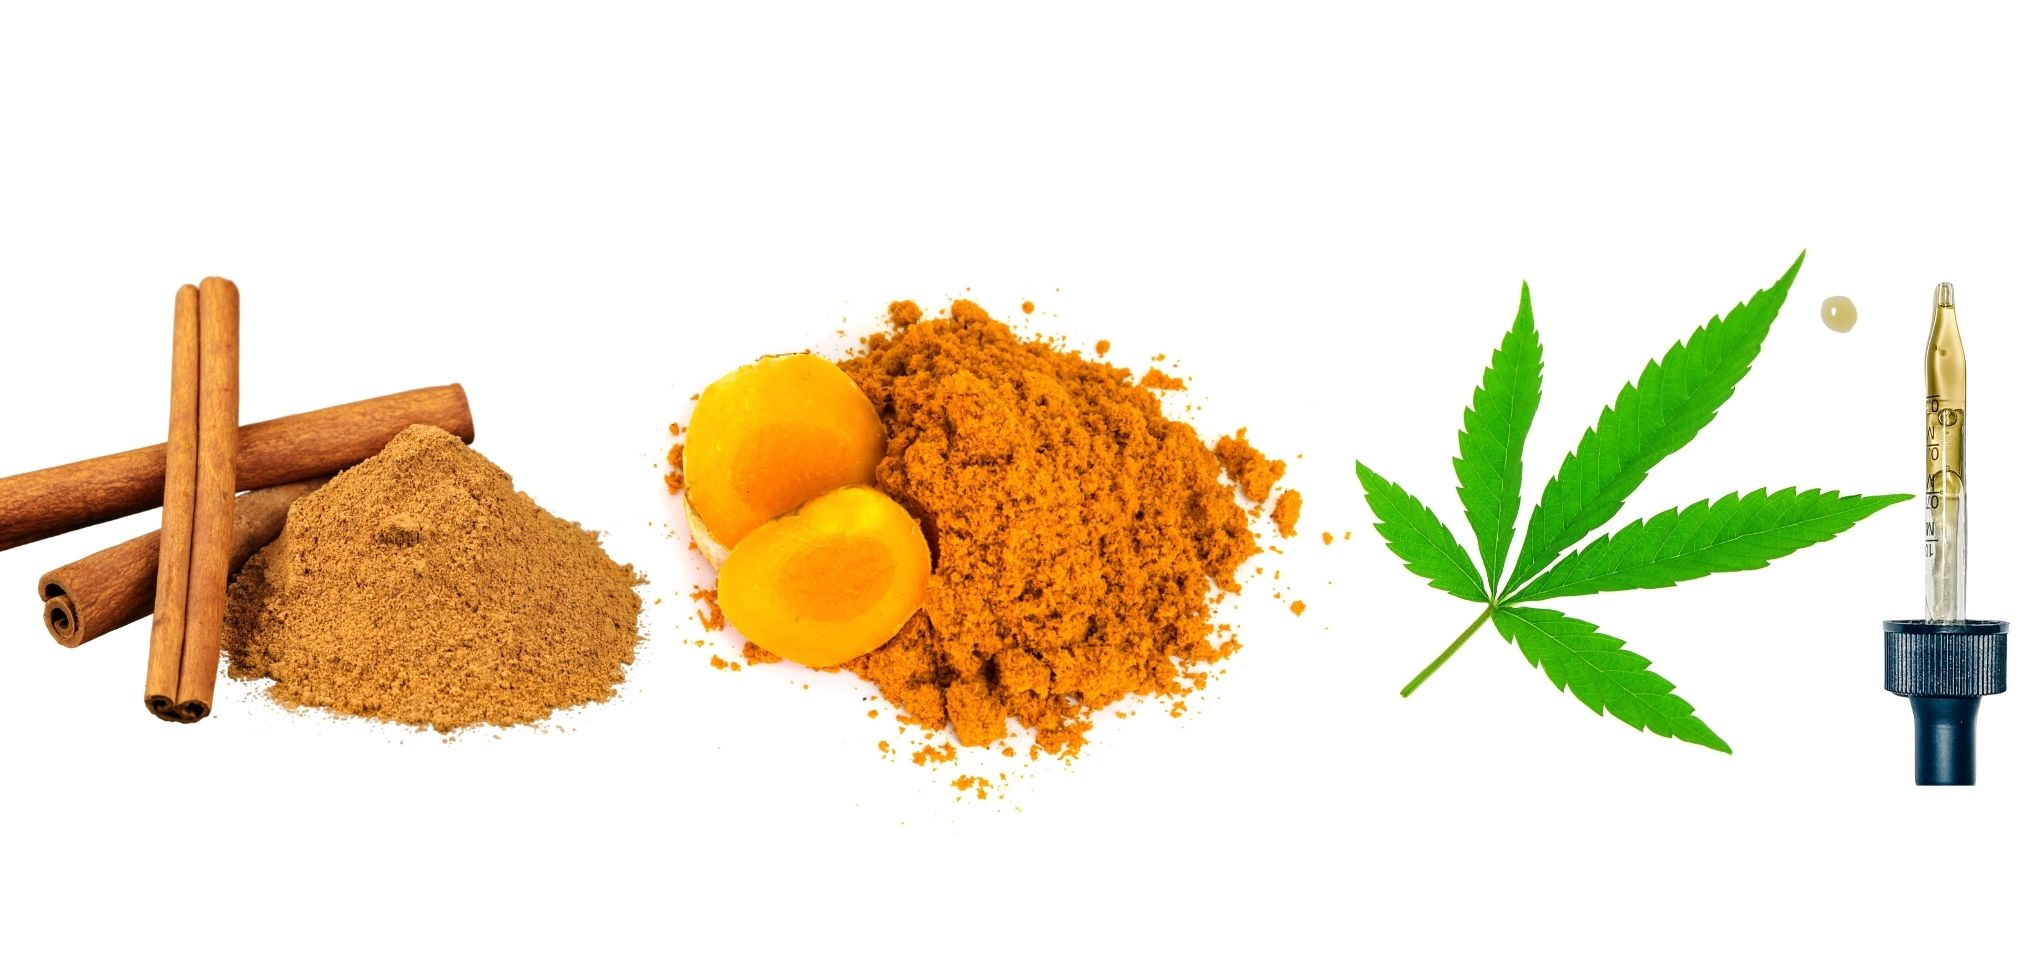 Cinnamon, Turmeric, and CBD Oil.. My secret ingredients to a post-workout smoothie. Learn more at Molecular CBD Shop